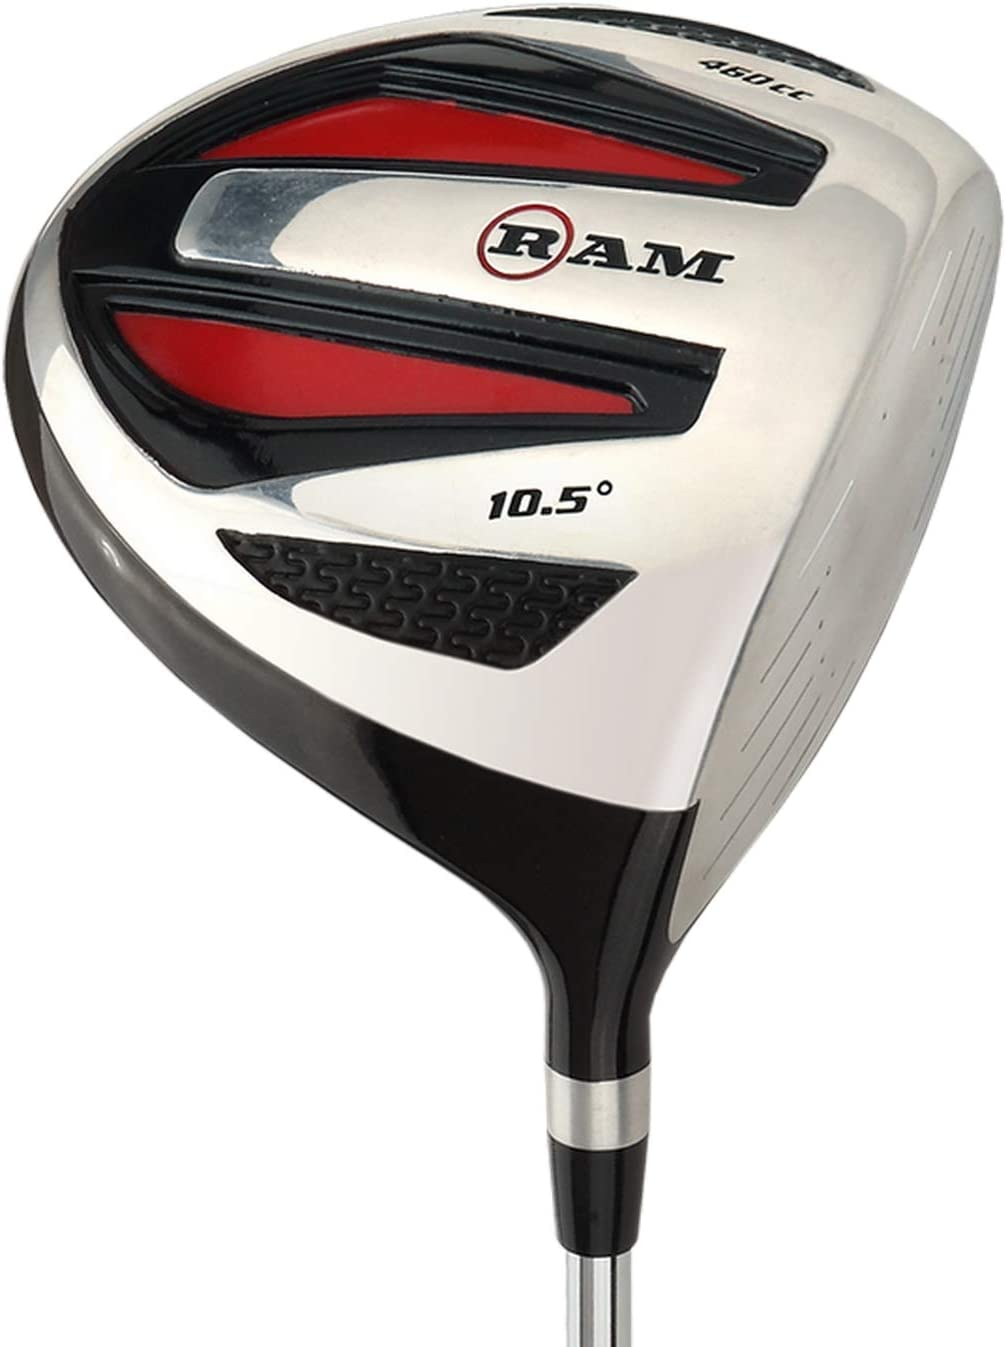 Ram Golf SGS 460cc Driver – Mens Right Hand – Headcover Included – Steel Shaft